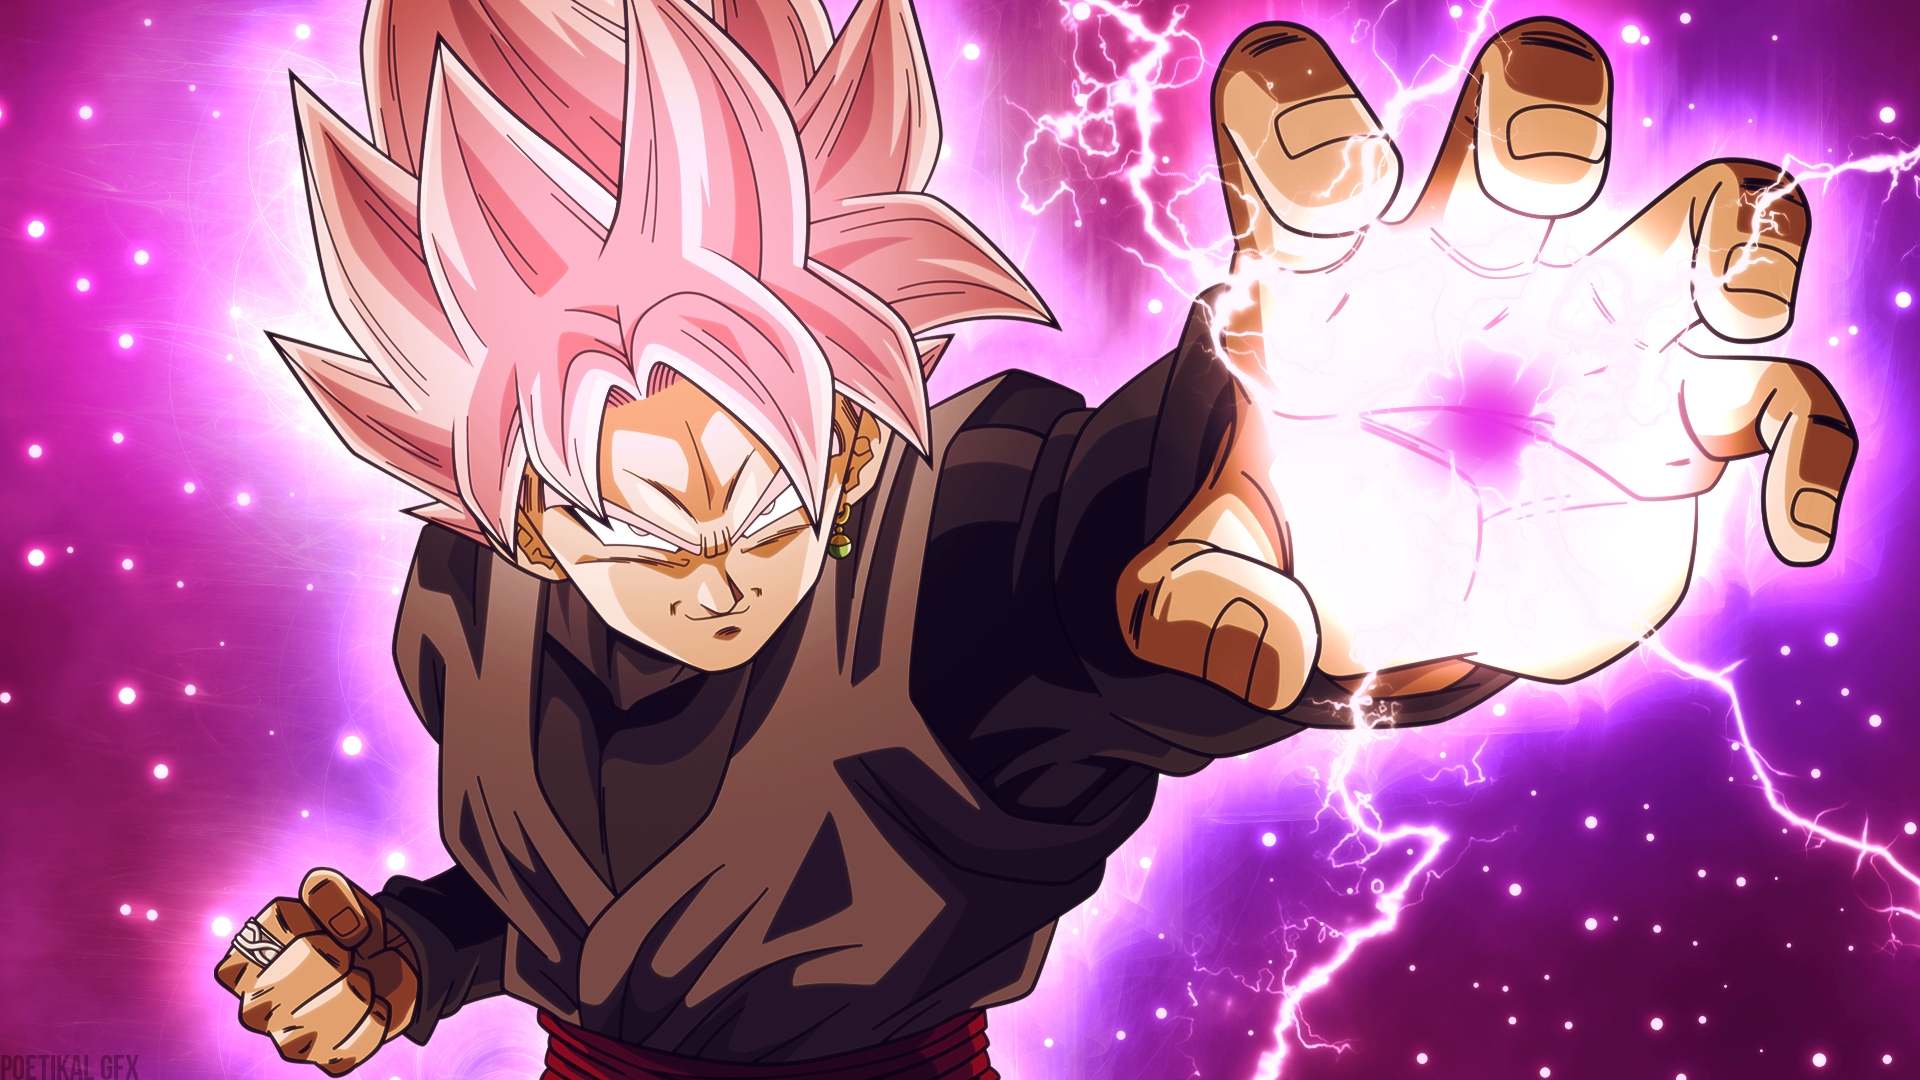 88 black goku hd wallpapers | background images - wallpaper abyss